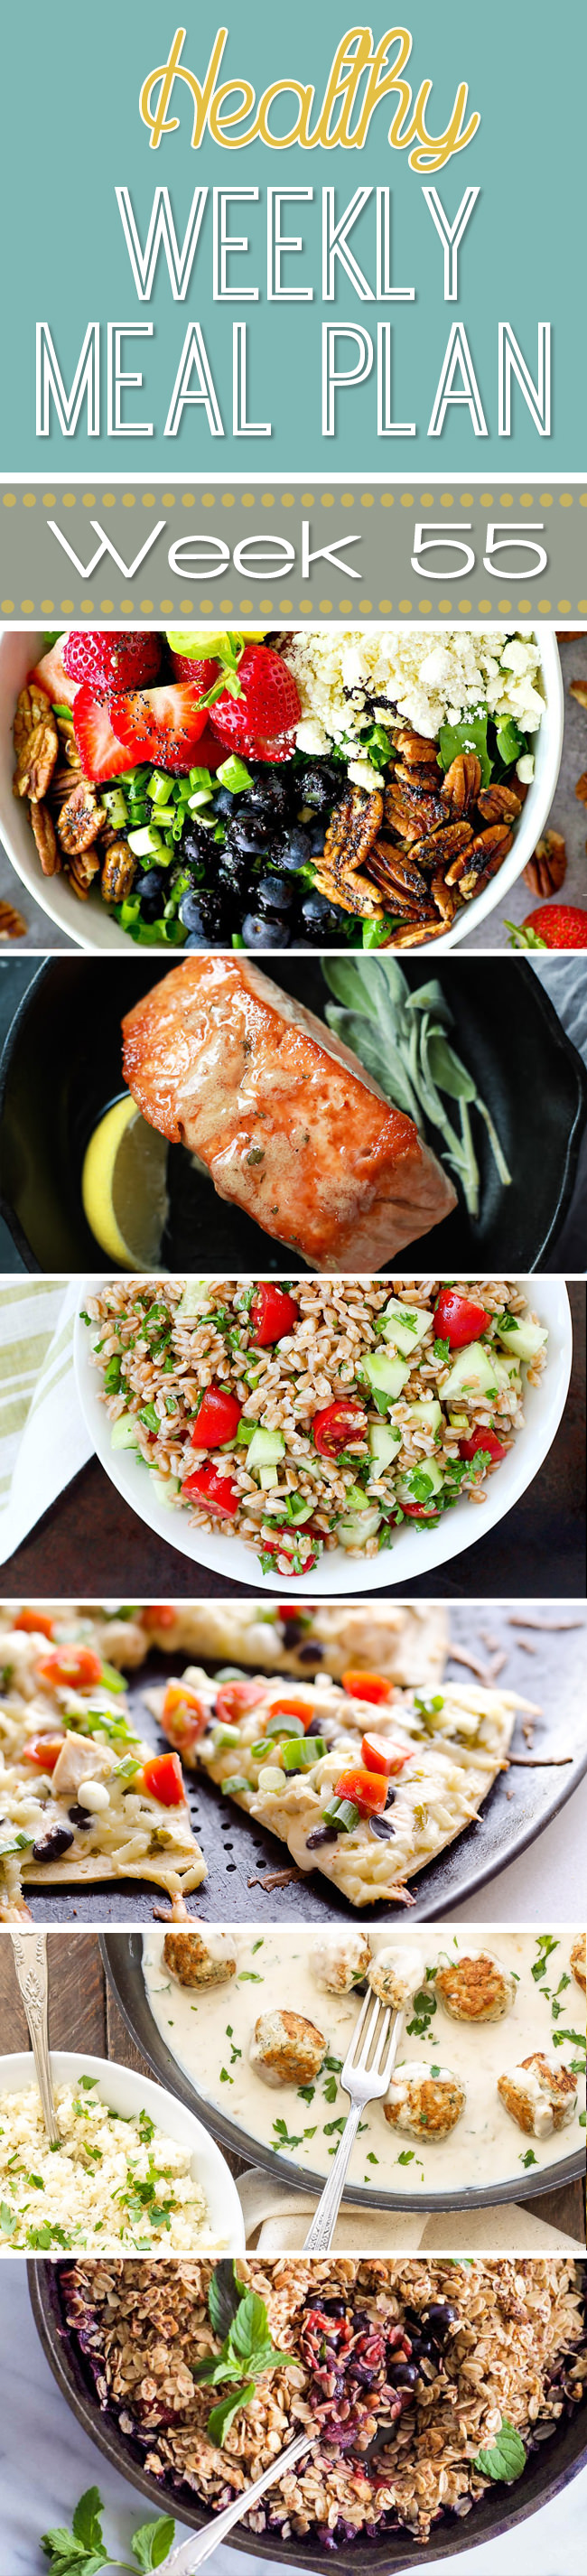 Healthy Meal Plan Week 55 starts off with charred corn flatbread, pan seared salmon and chicken burrito bowls!